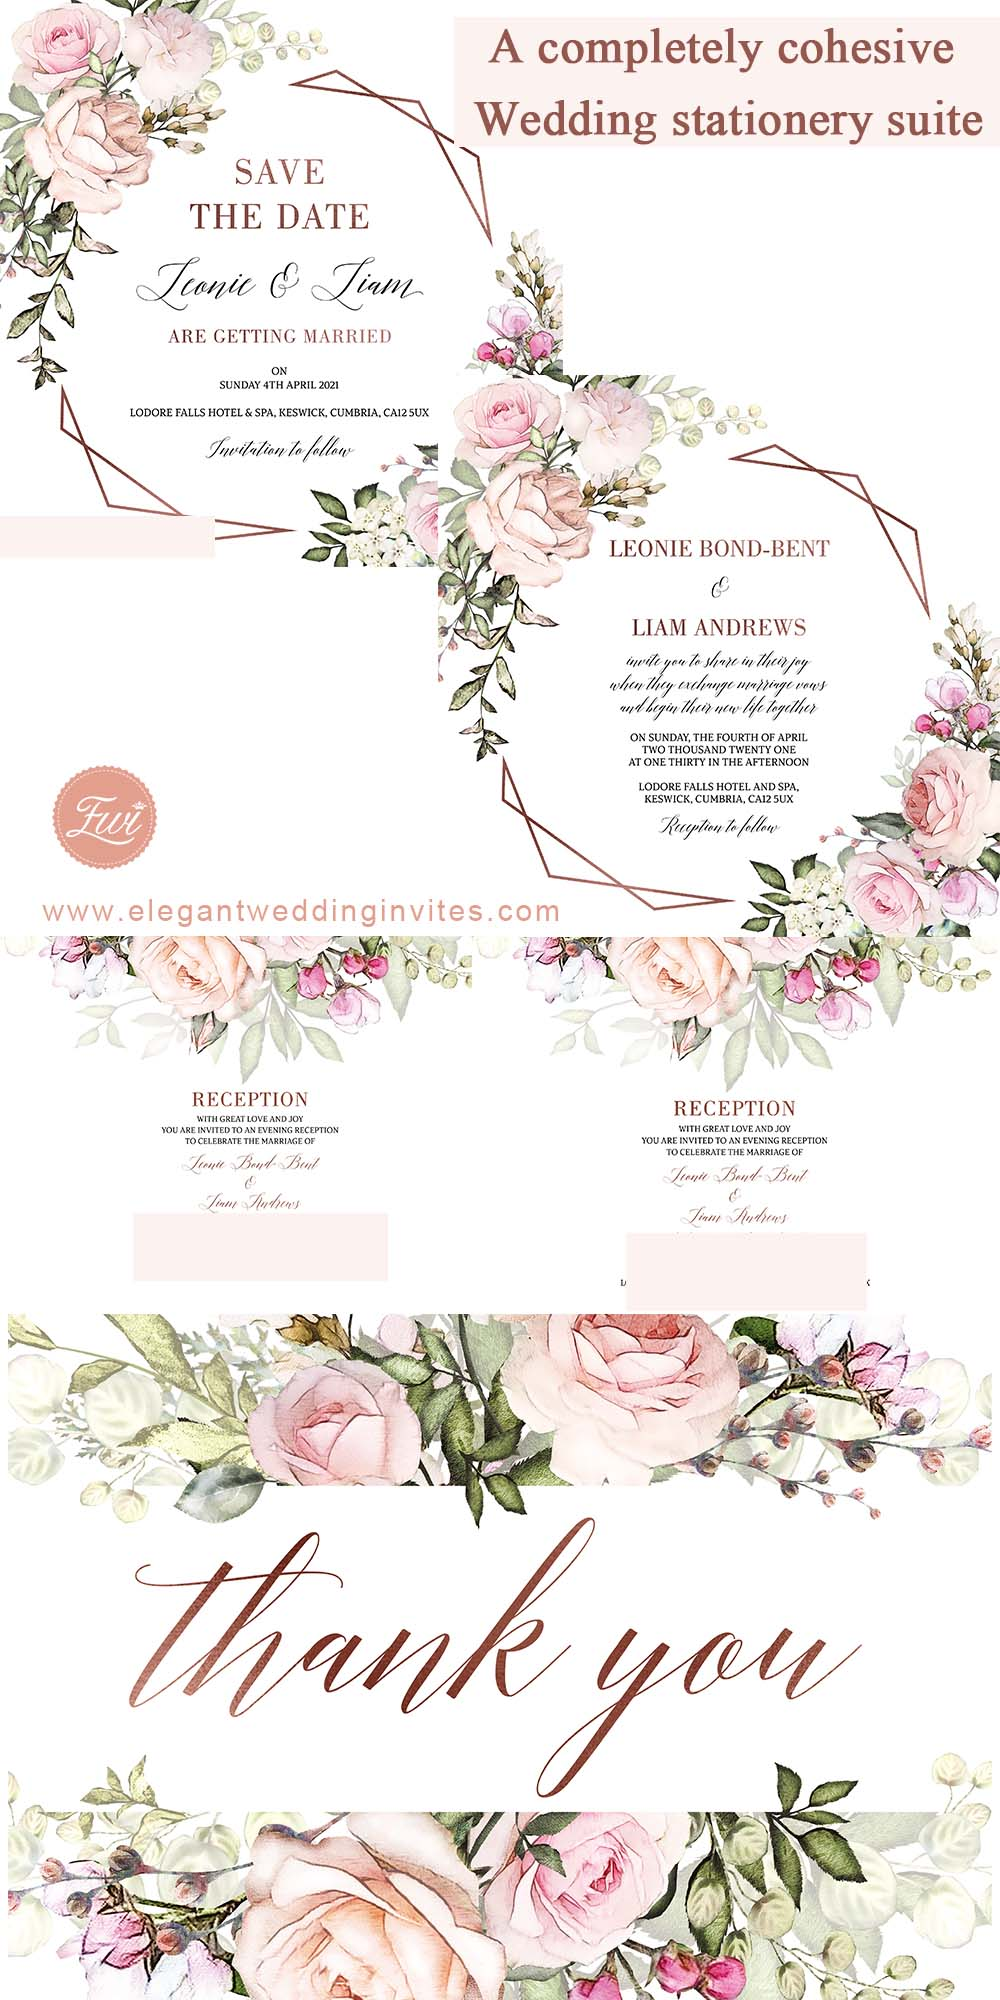 a completely cohesive and coordinated blush floral wedding stationery suite